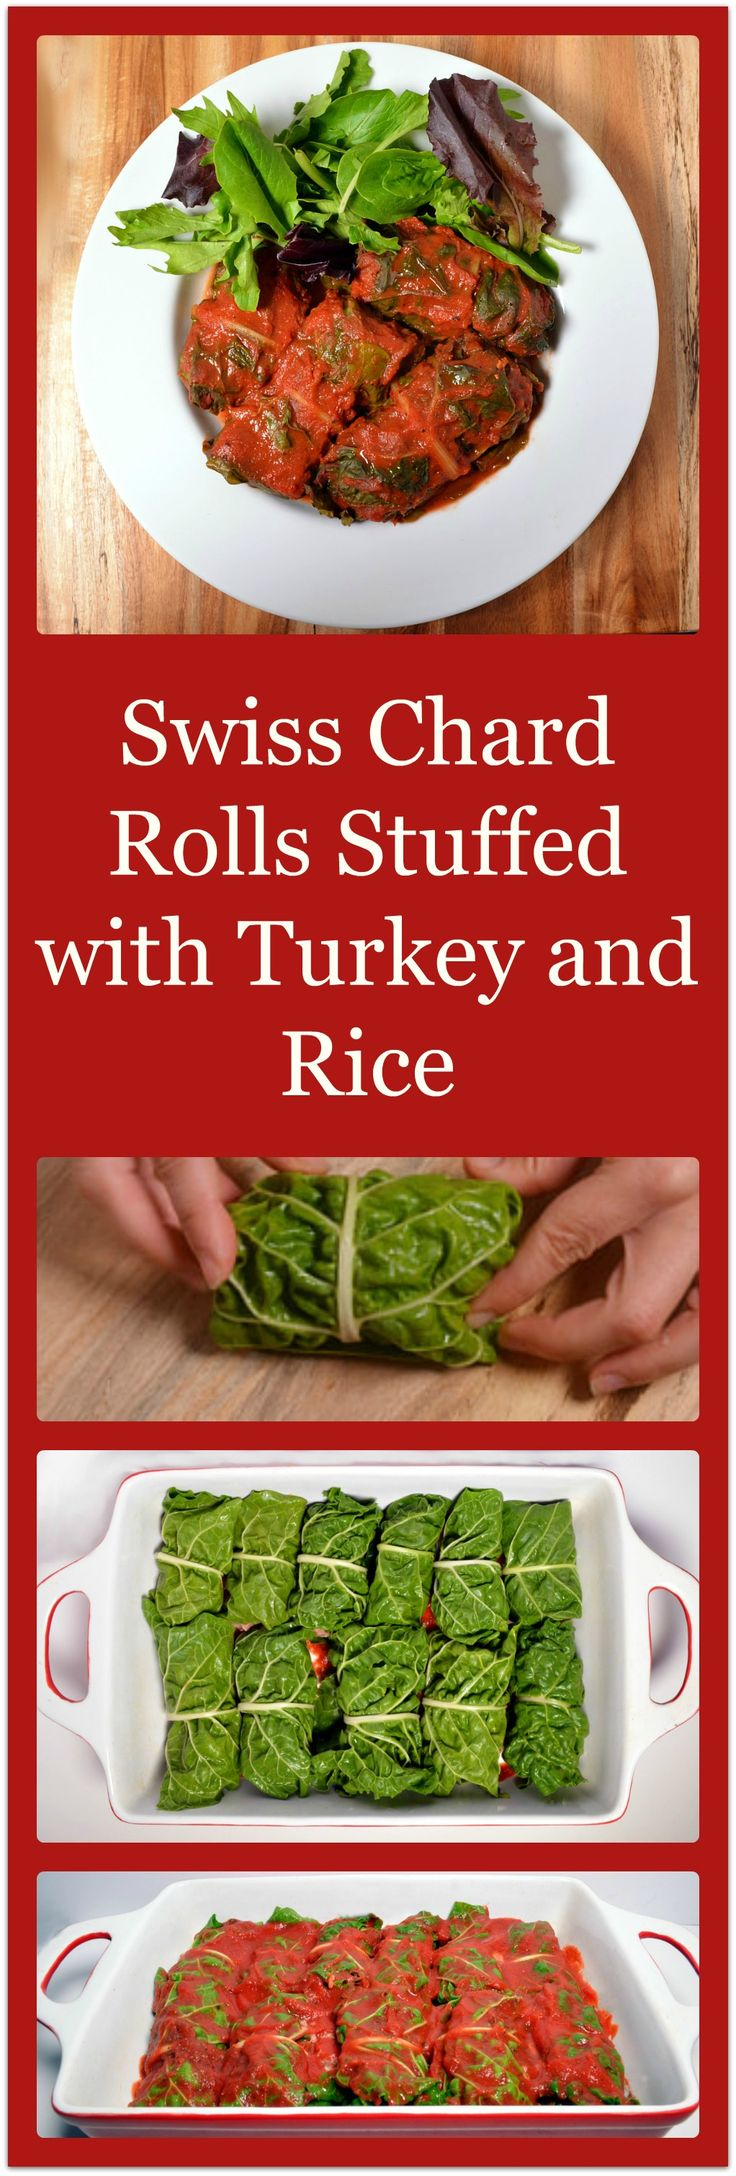 Swiss Chard Rolls Stuffed with Turkey and Rice - Gluten-free and Delicious! Great alternative to cabbage rolls. www.HealthyLifeRedesign.com